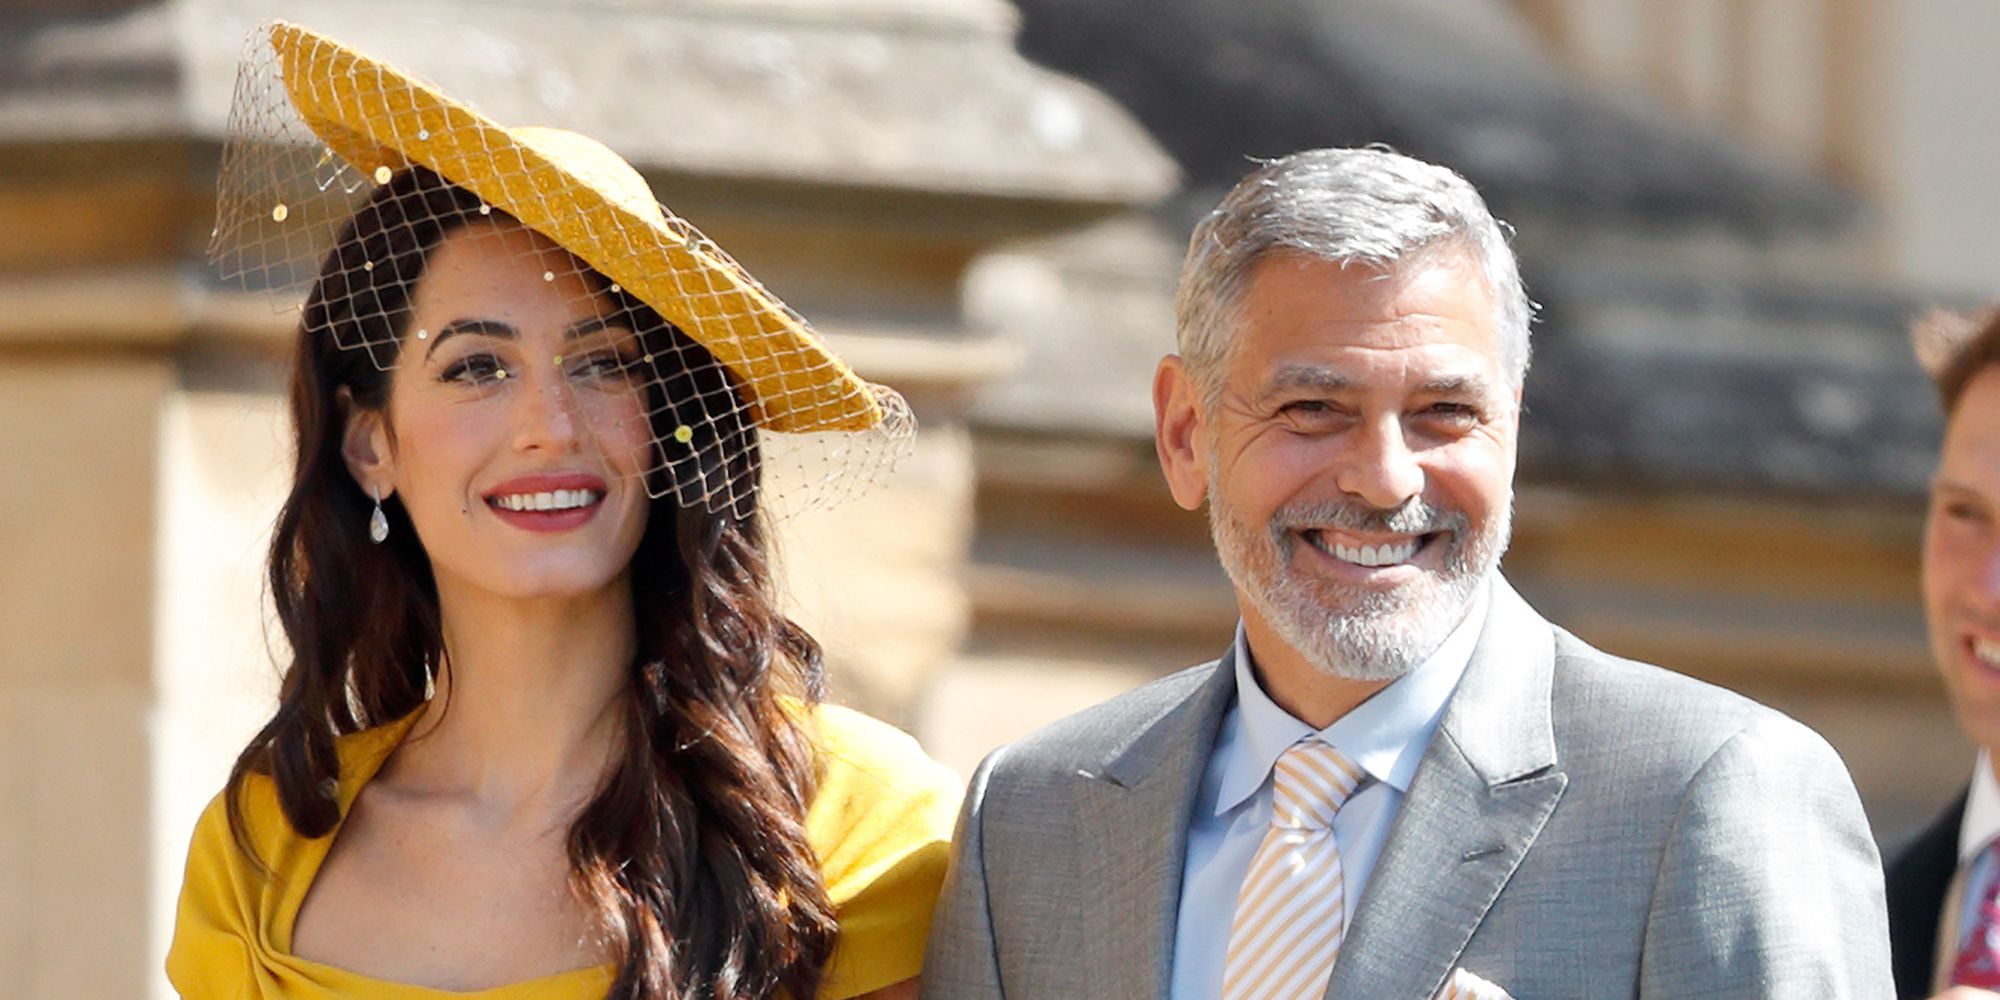 George and Amal Clooney are tipped to be godparents of Meghan and Harry's baby